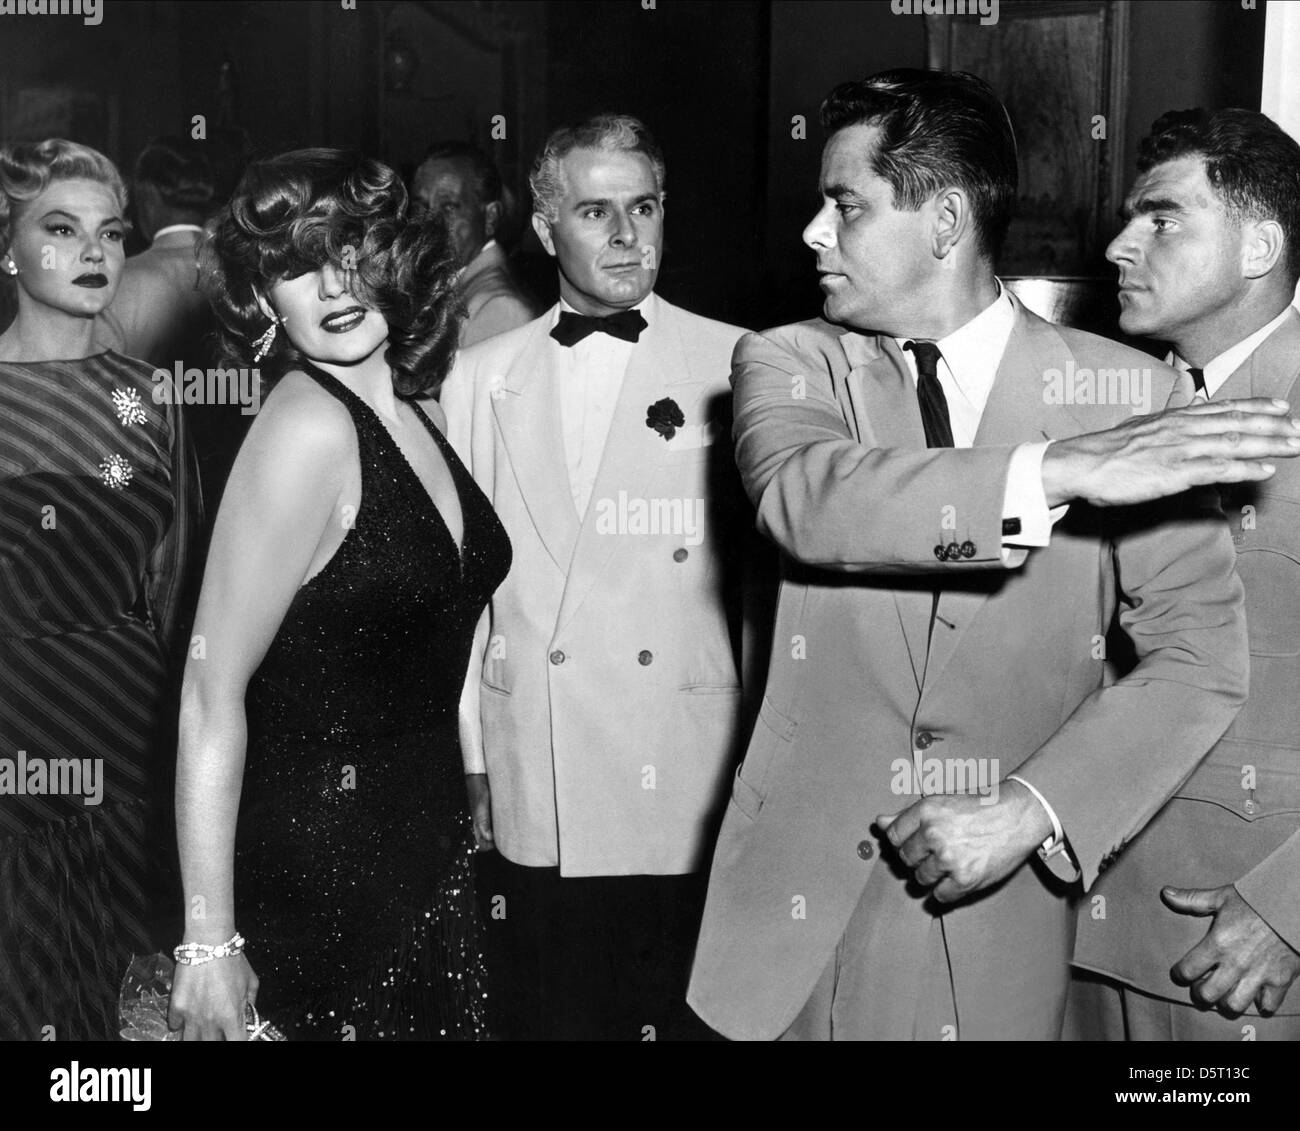 rita-hayworth-glenn-ford-affair-in-trini